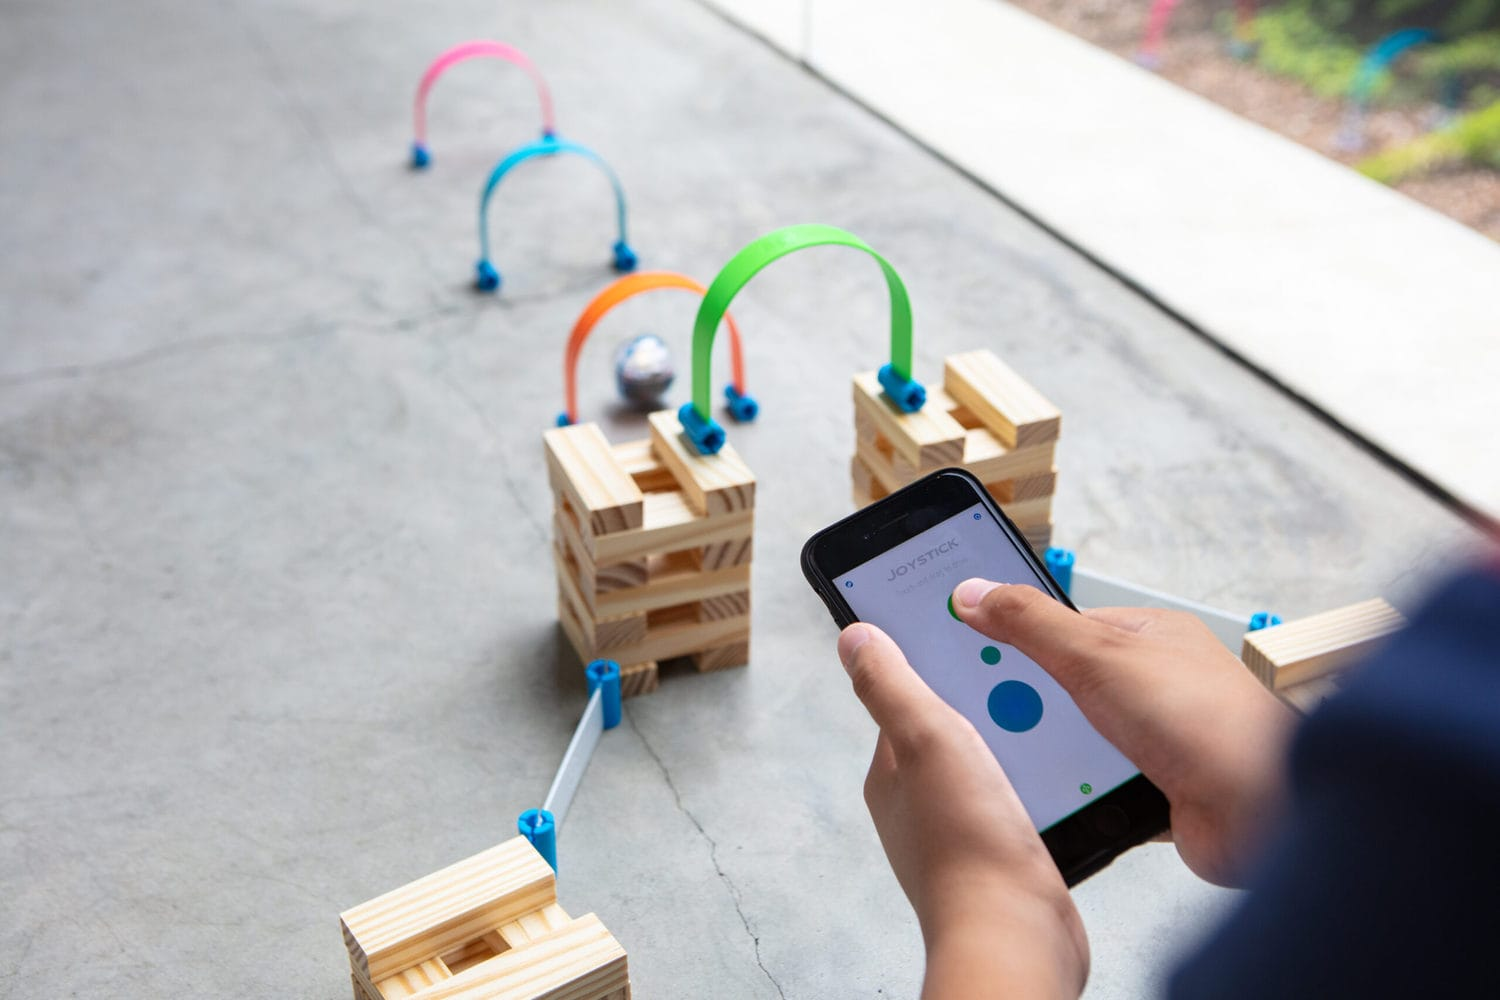 sphero robot ball running an obstacle course with blocks